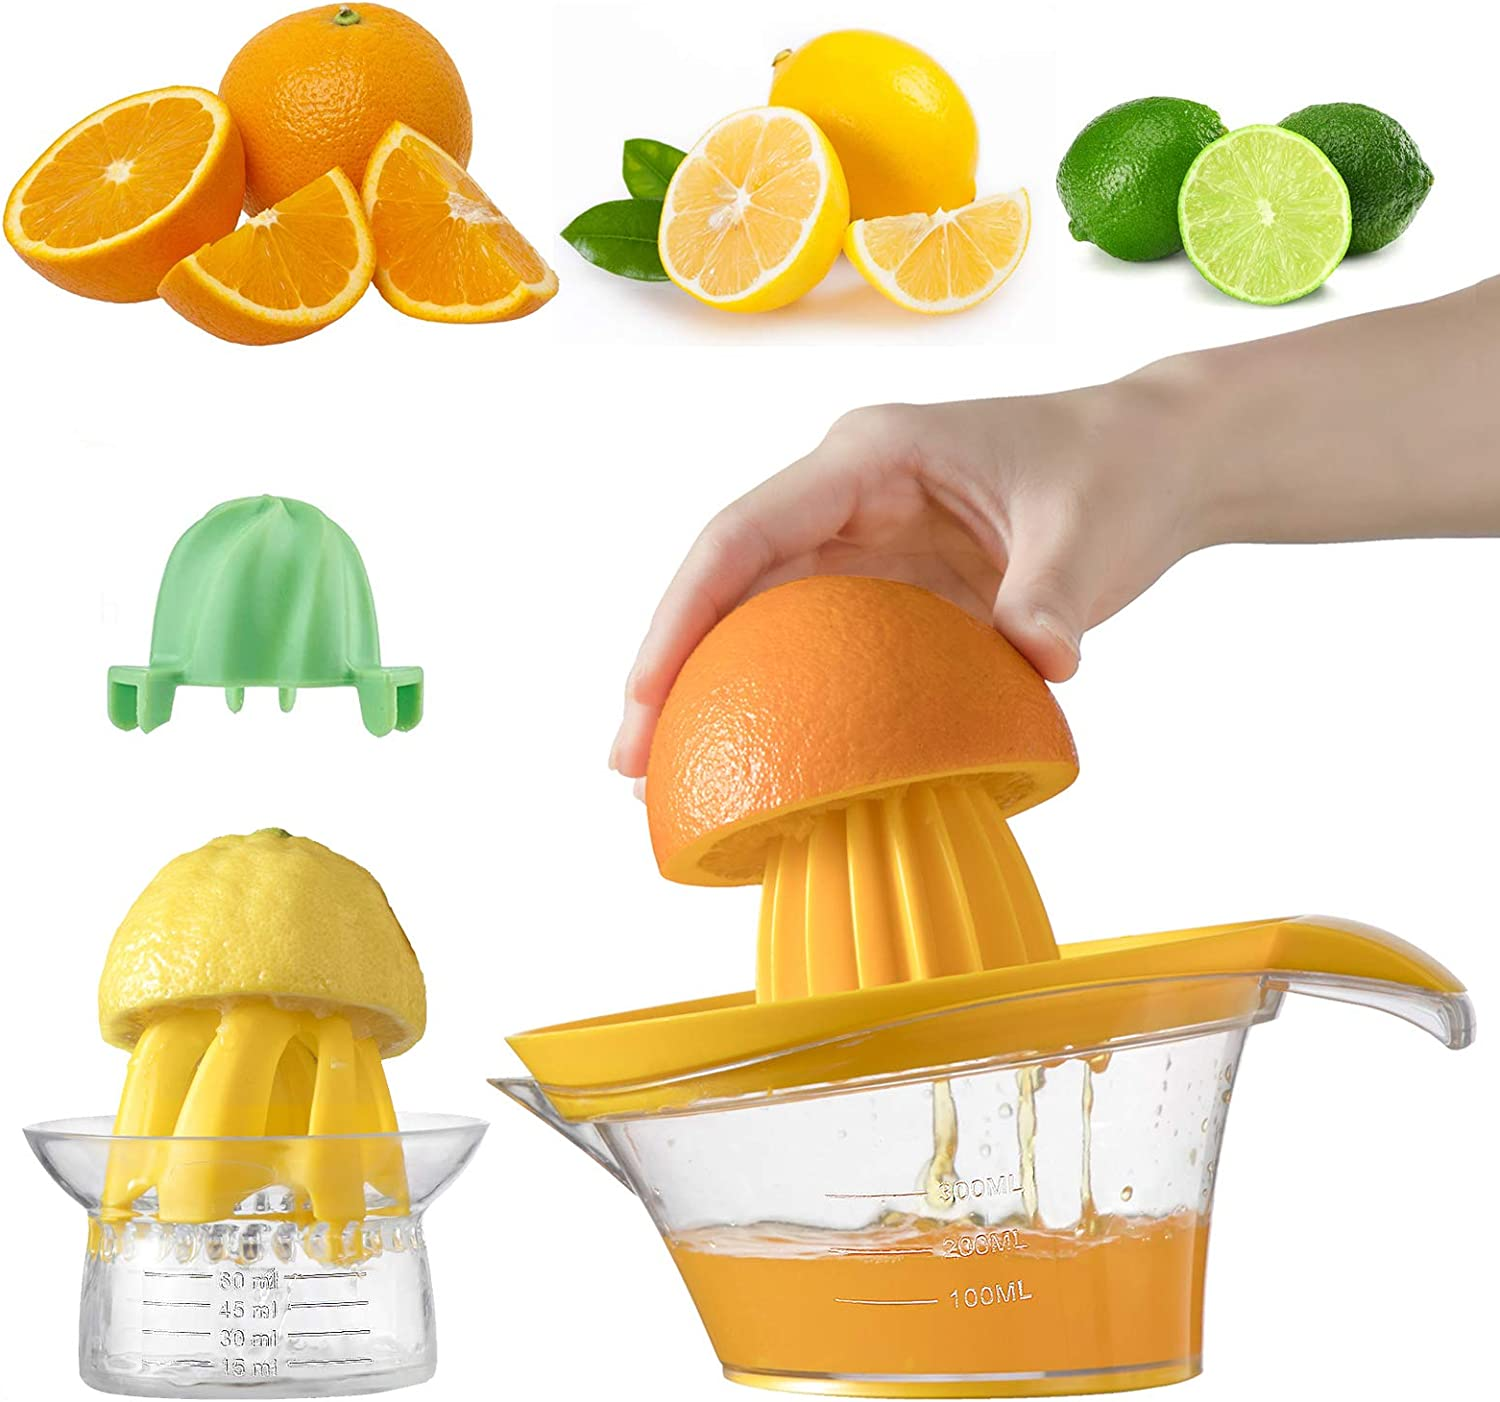 Lemon Squeezer,Orange Juicer,Lime Squeezer,3-in-1 Citrus Juicer ,Orange Juice Squeezer,with Strainer Built-in Measuring Cup - 14 OZ Capacity (pack of 2)